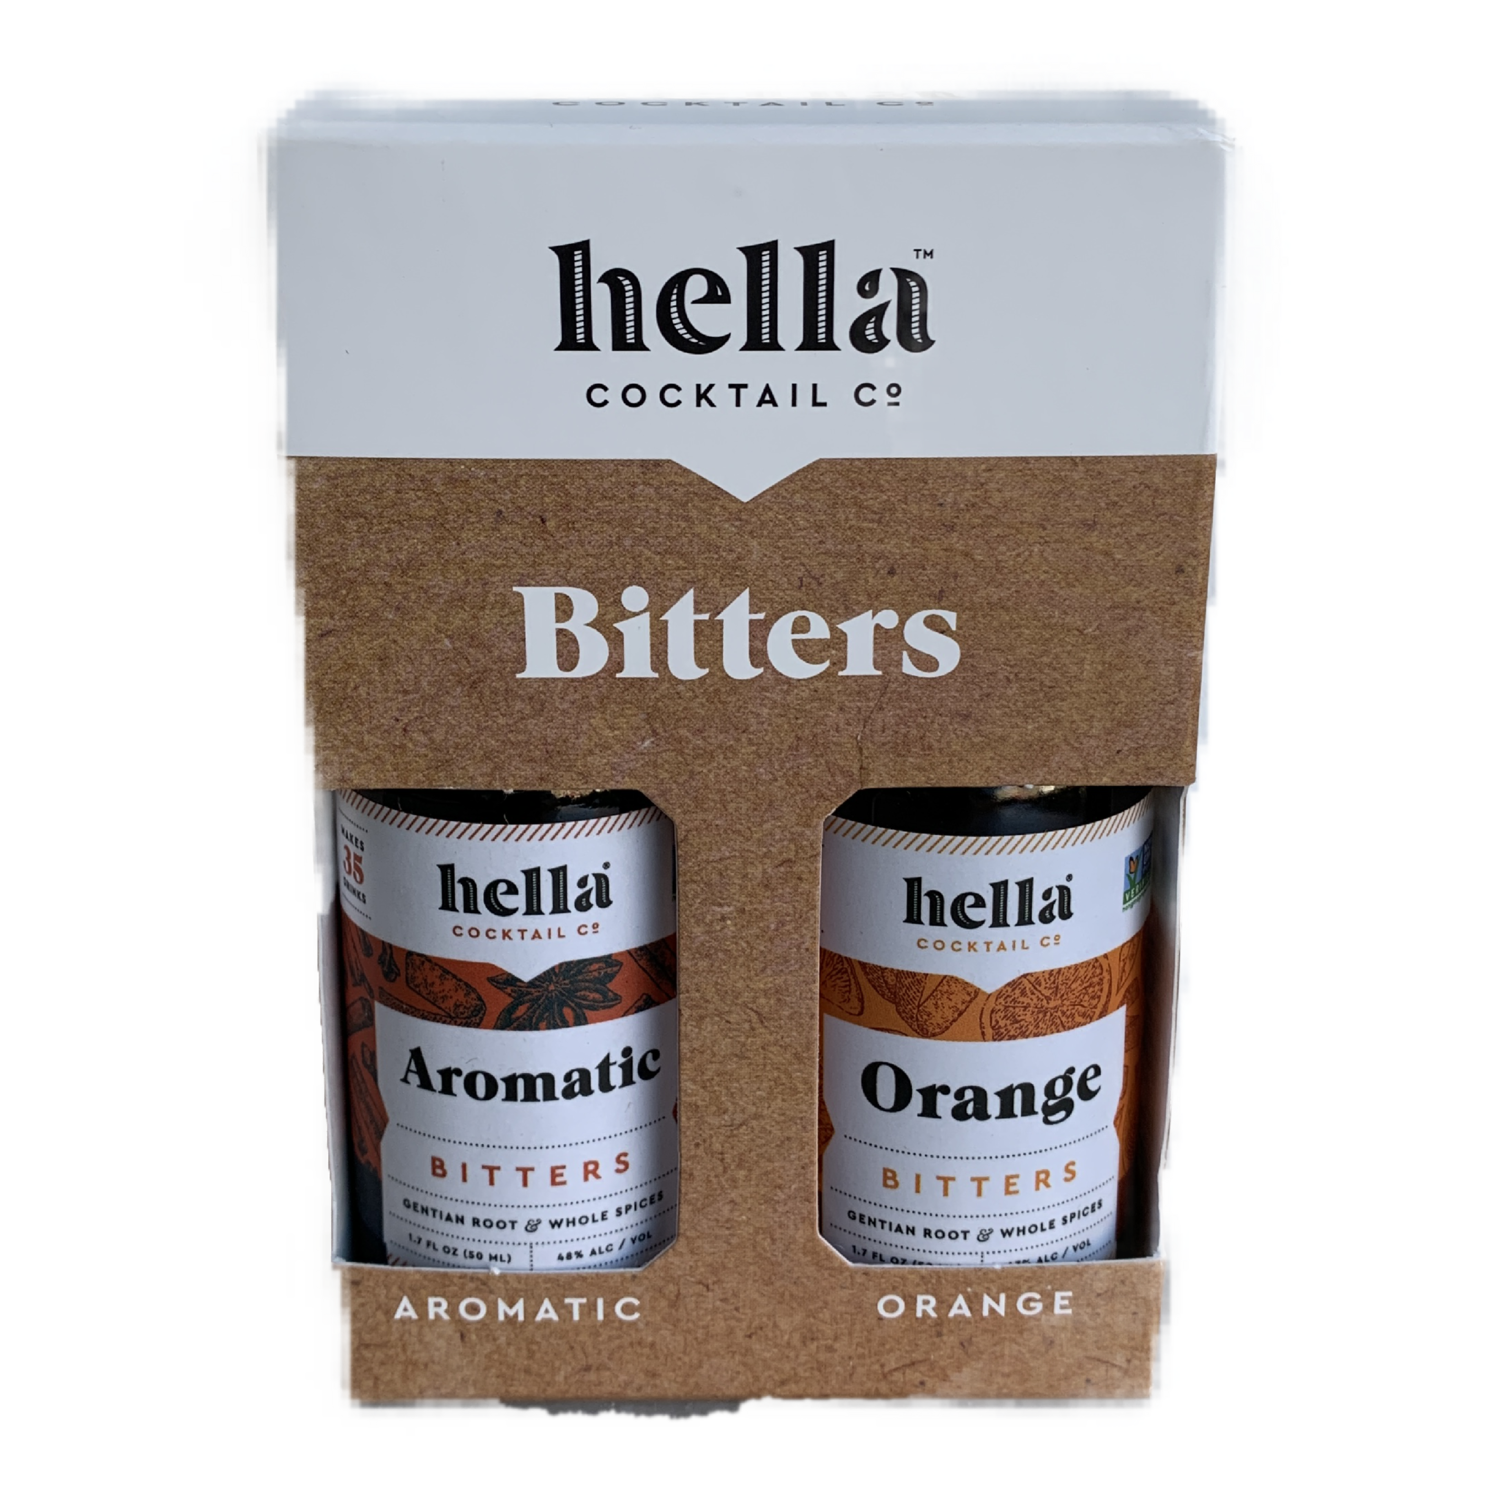 HELLA COCKTAIL BITTERS 2 PACK